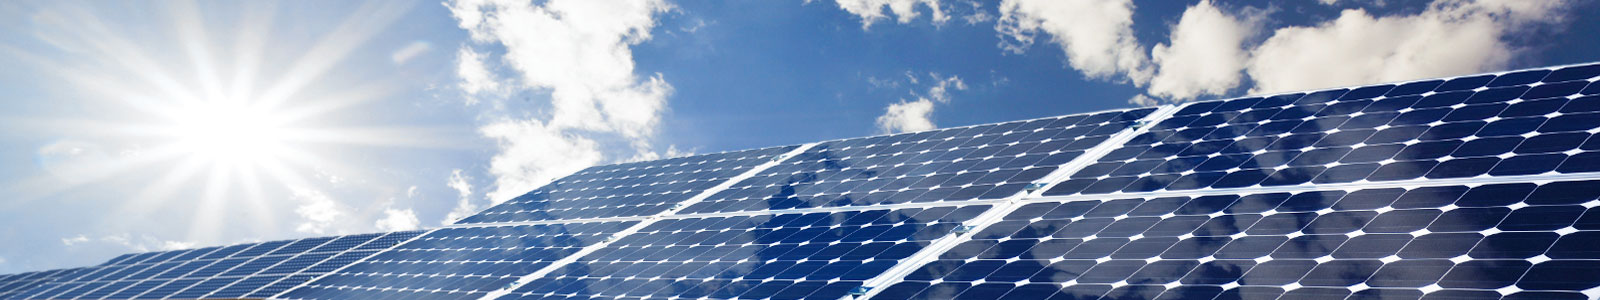 White Knight Pumps for Solar Photovoltaics Industry Applications